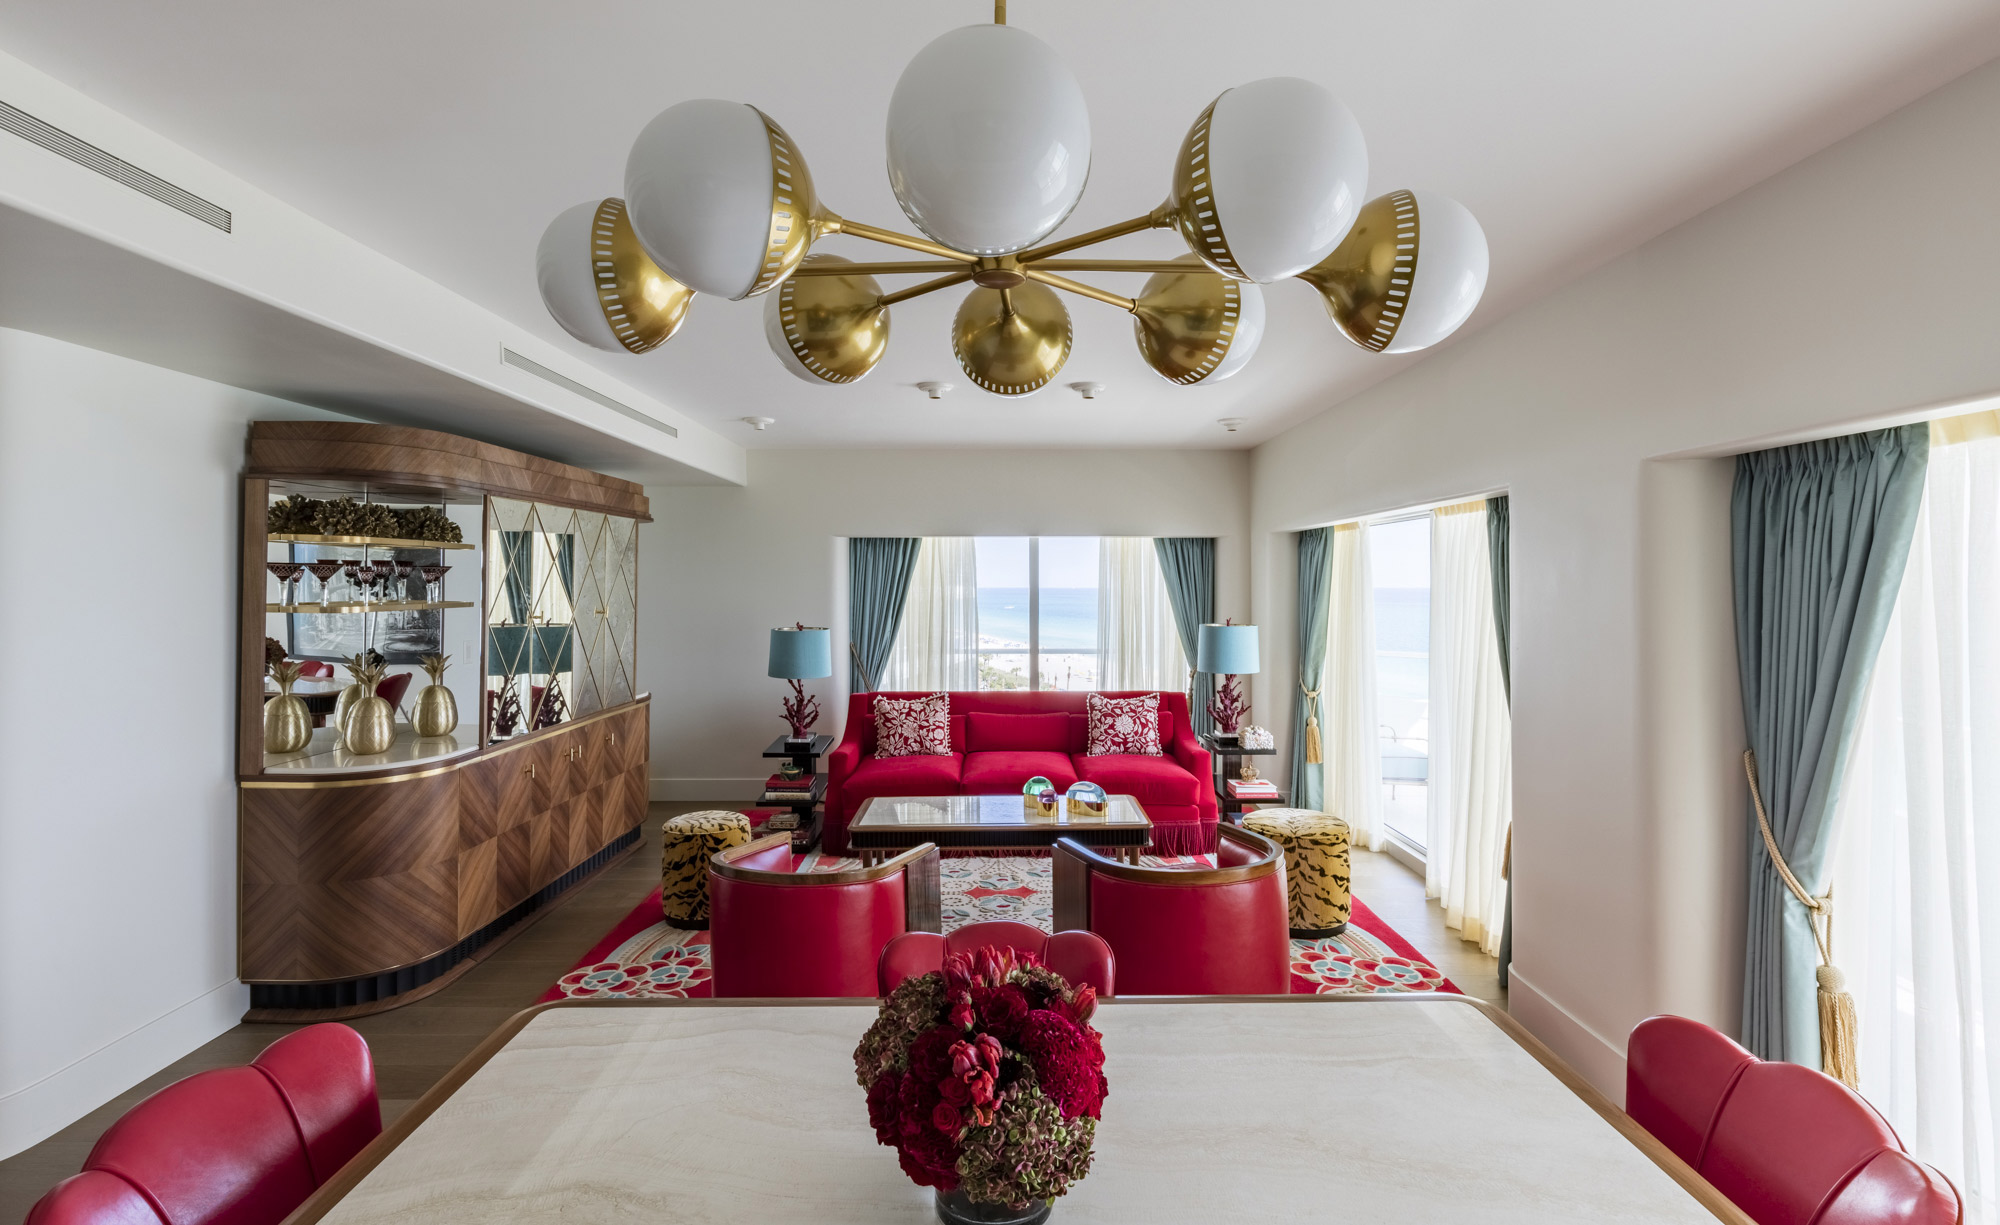 Faena Hotel Miami Beach a new hotel is making waves in